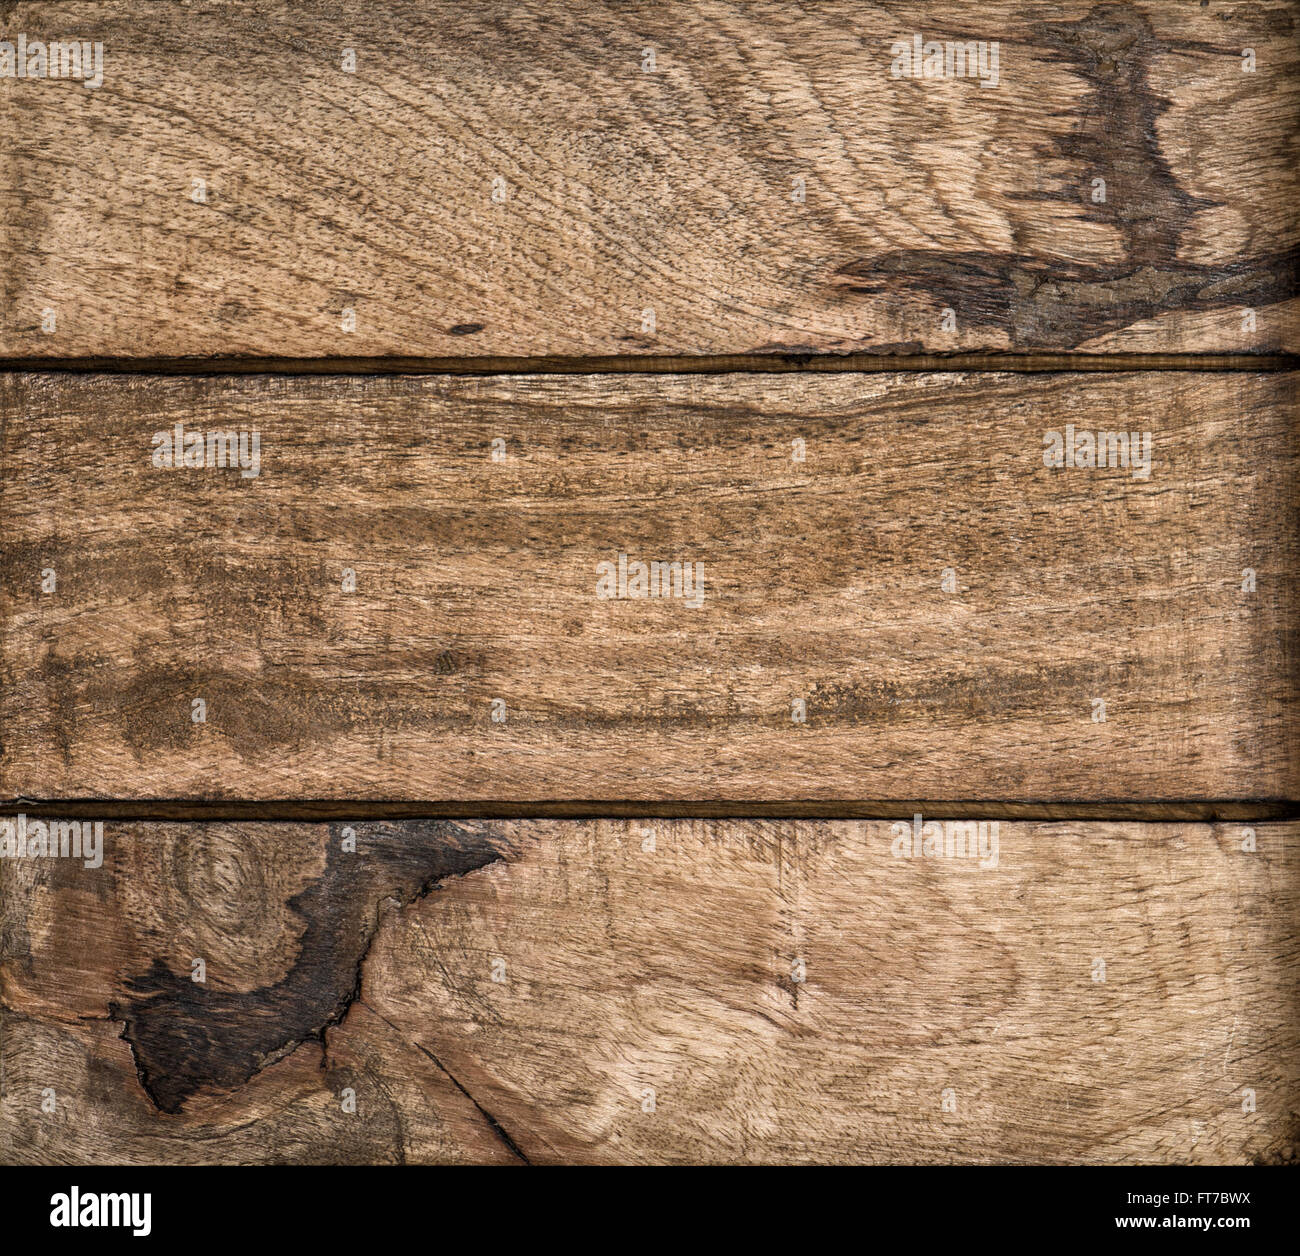 Wooden background. Tack texture. Abstract rustic surface - Stock Image